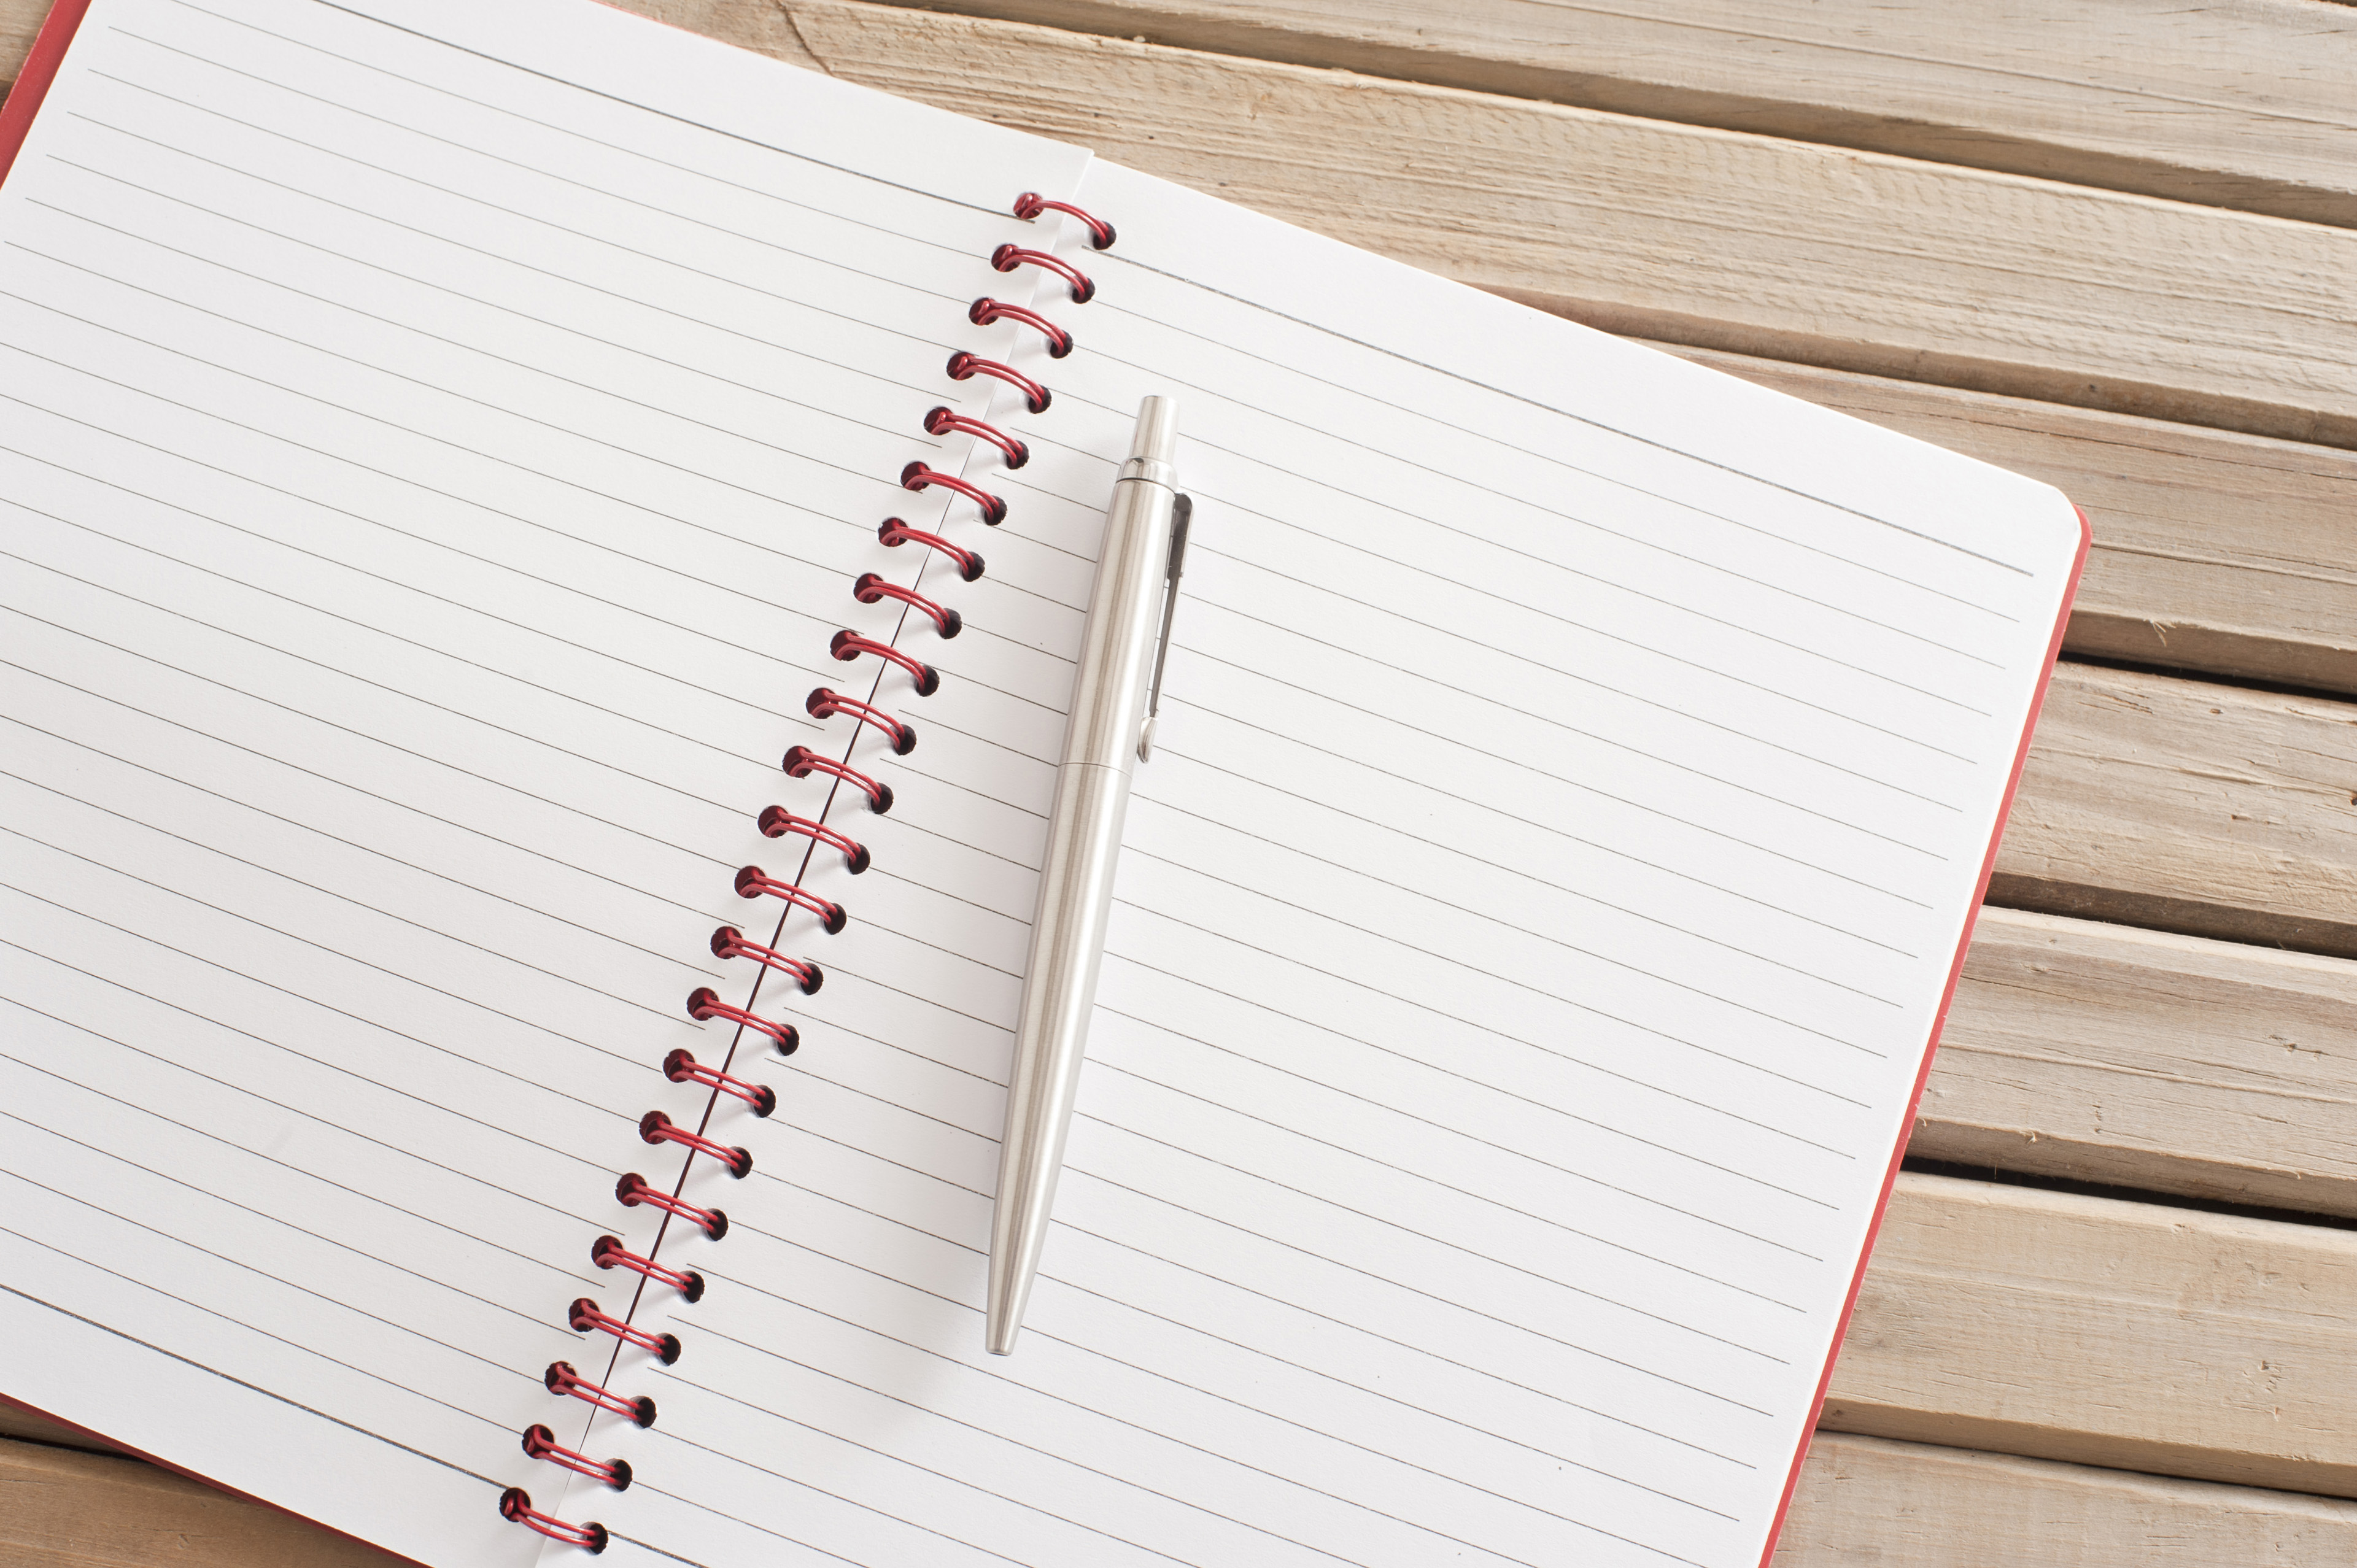 Open Blank Notebook with Ballpoint Pen on Top